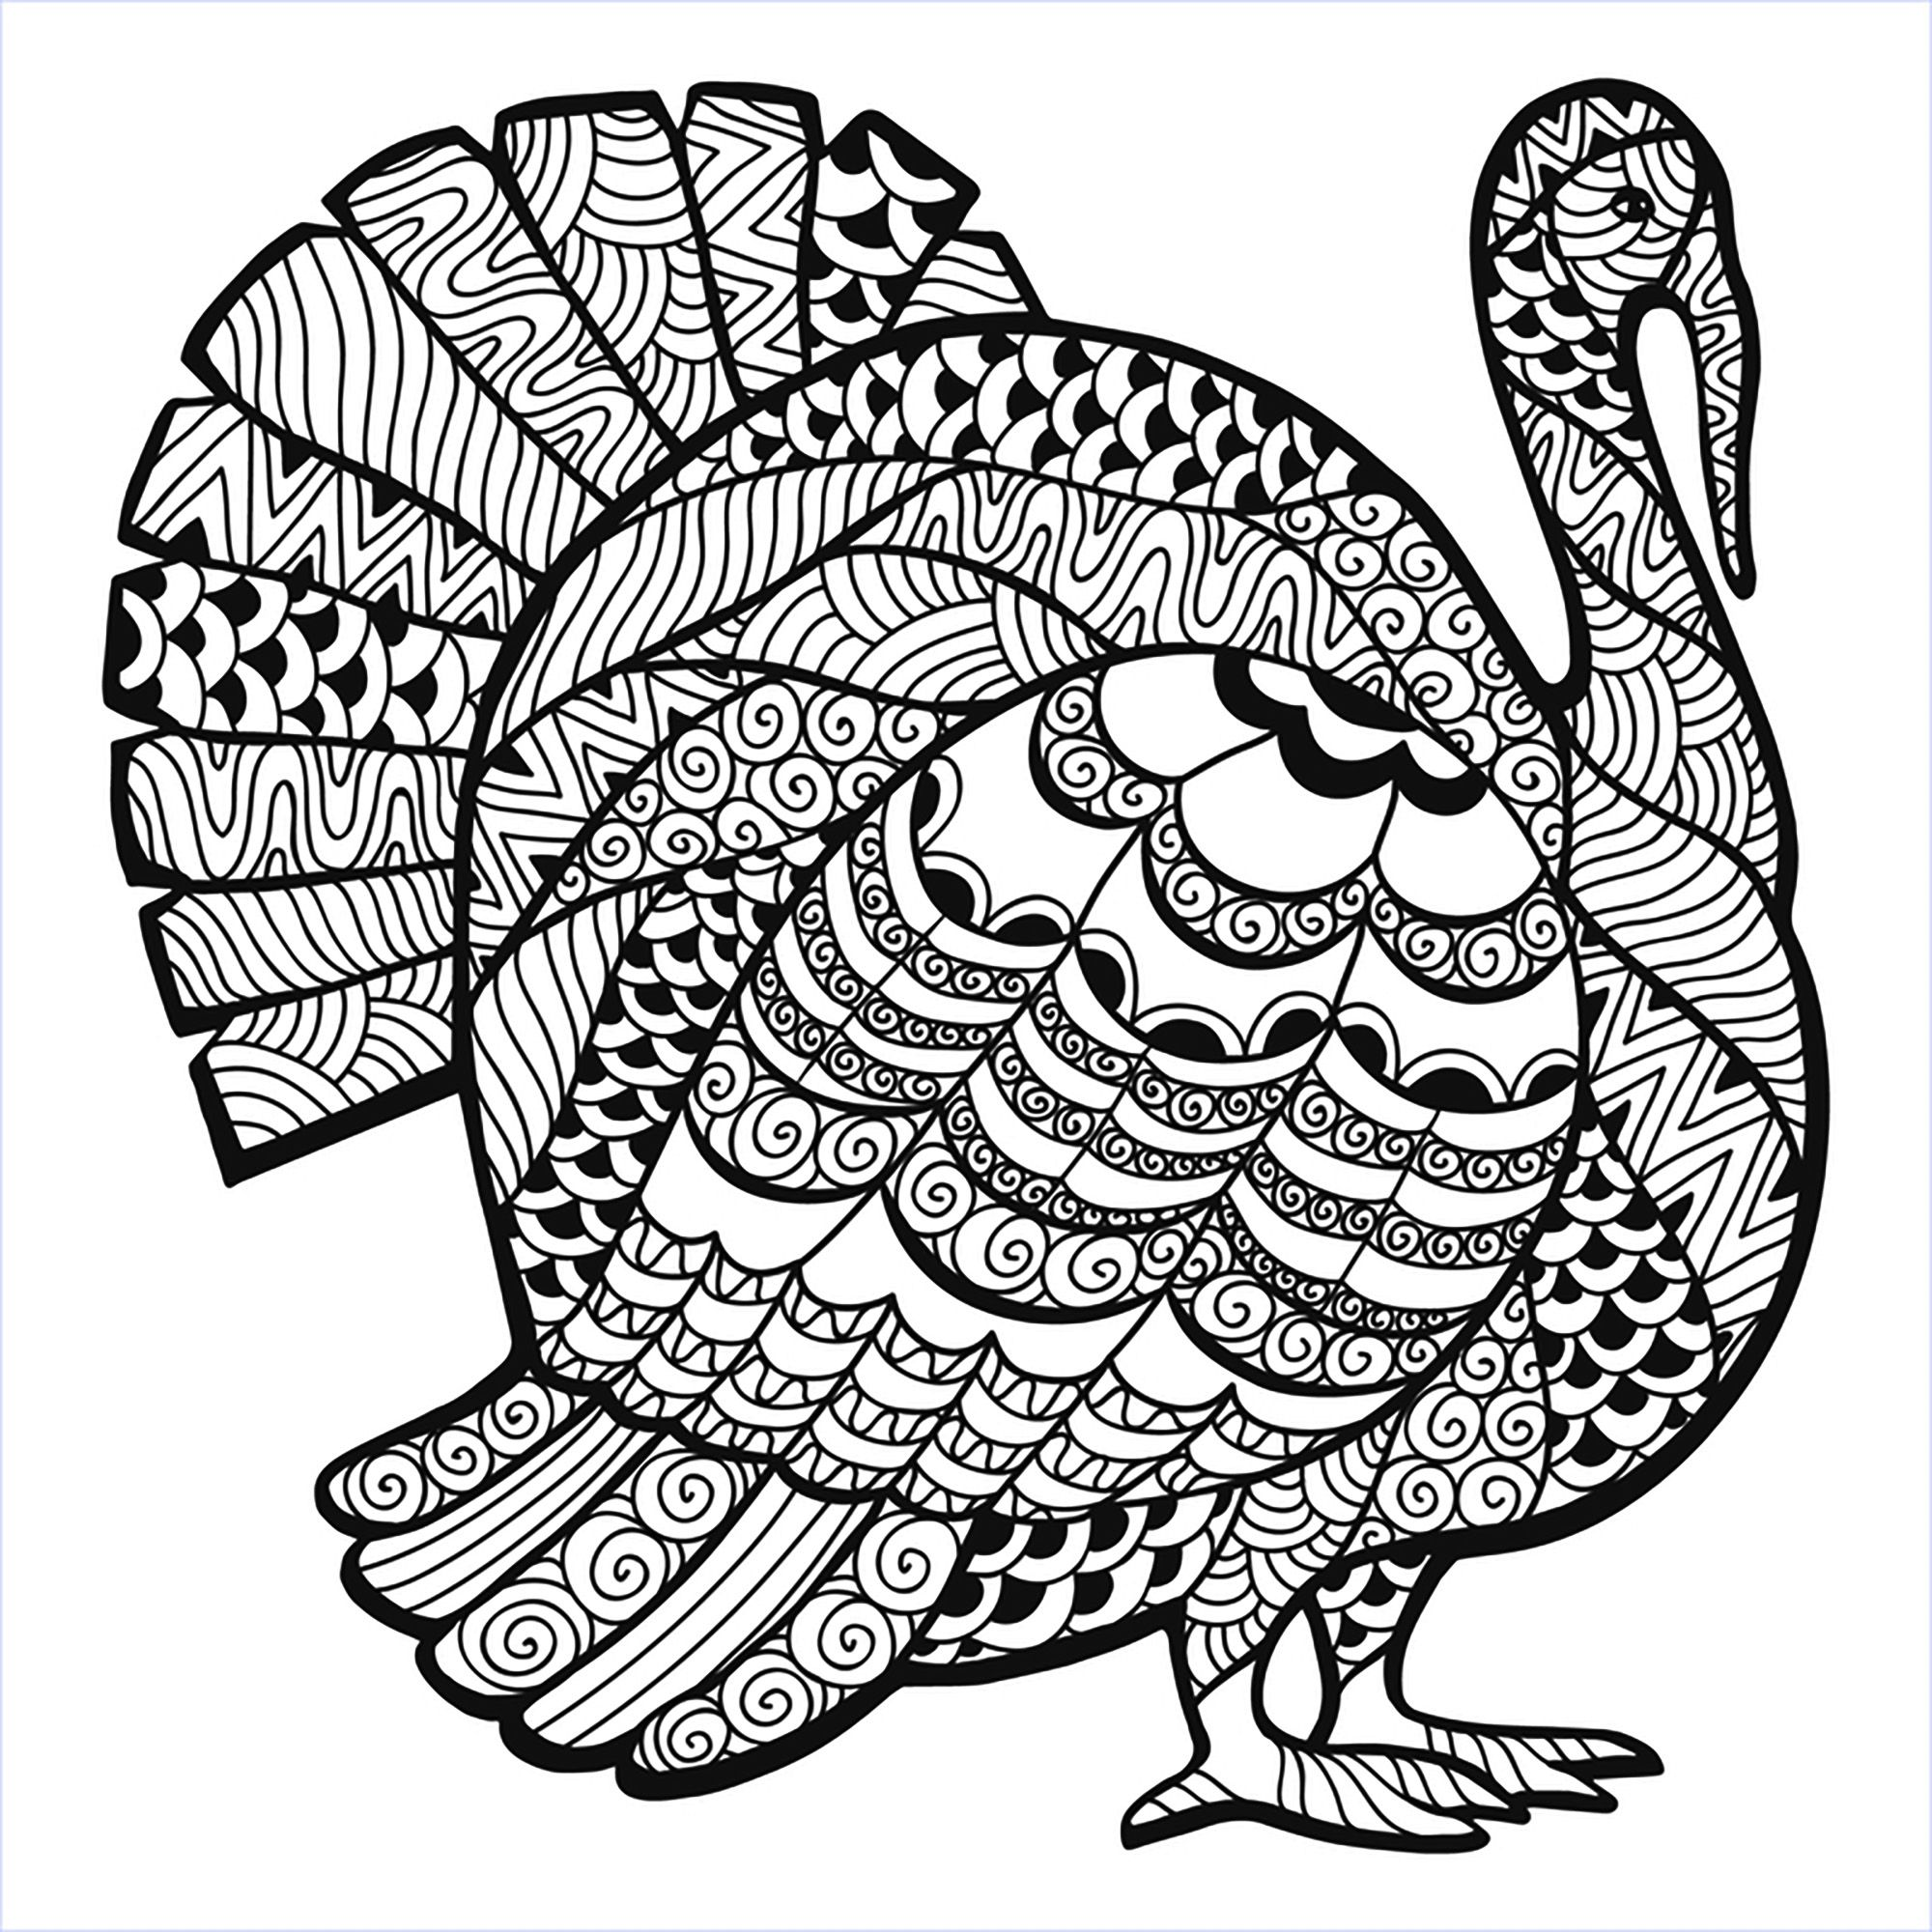 Thanksgiving Turkey Zentangle Coloring Page From The Gallery Events Artist Lena